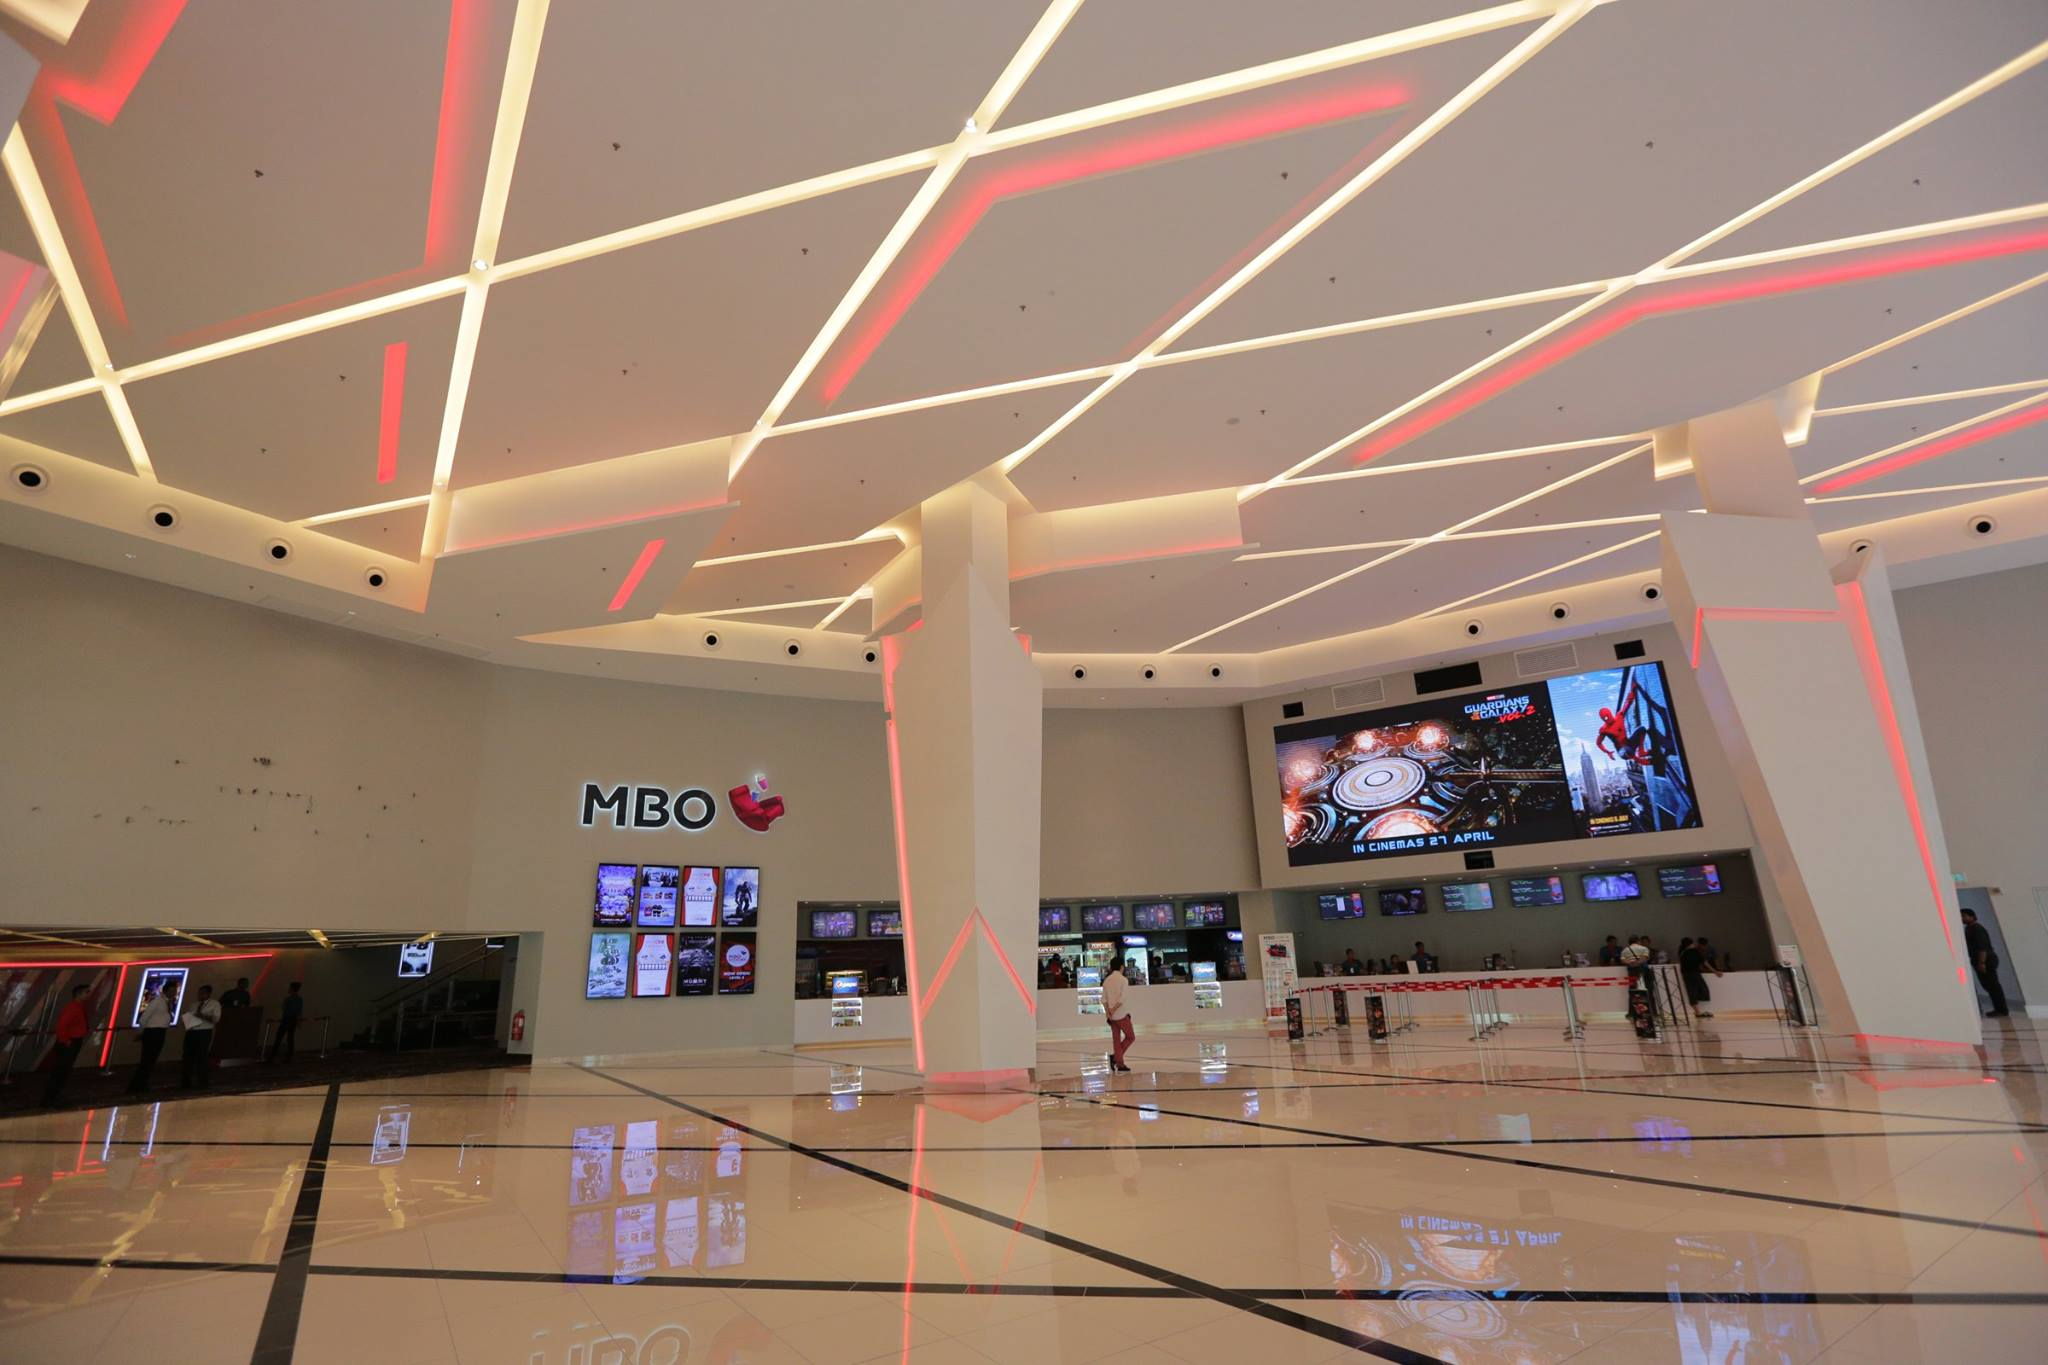 Image from MBO Cinemas (Facebook)